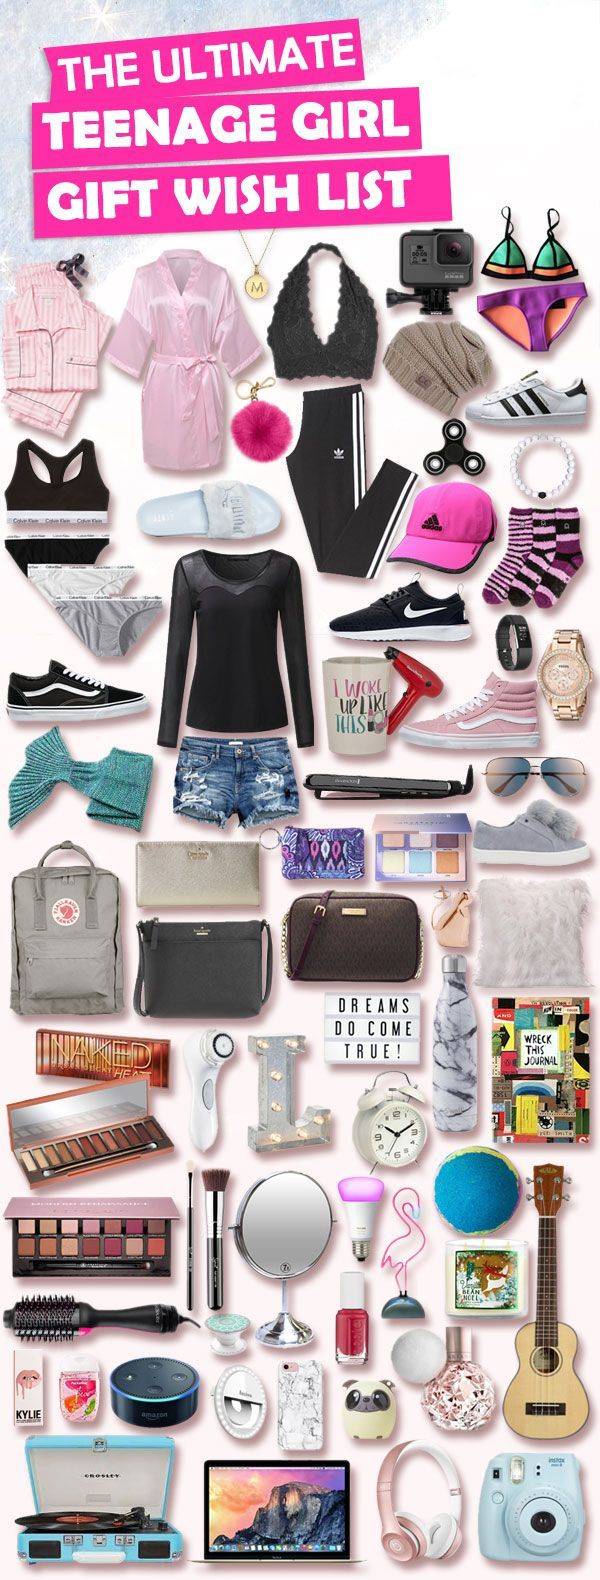 The 25+ best Teenage girl gifts ideas on Pinterest | Teenage girl ...